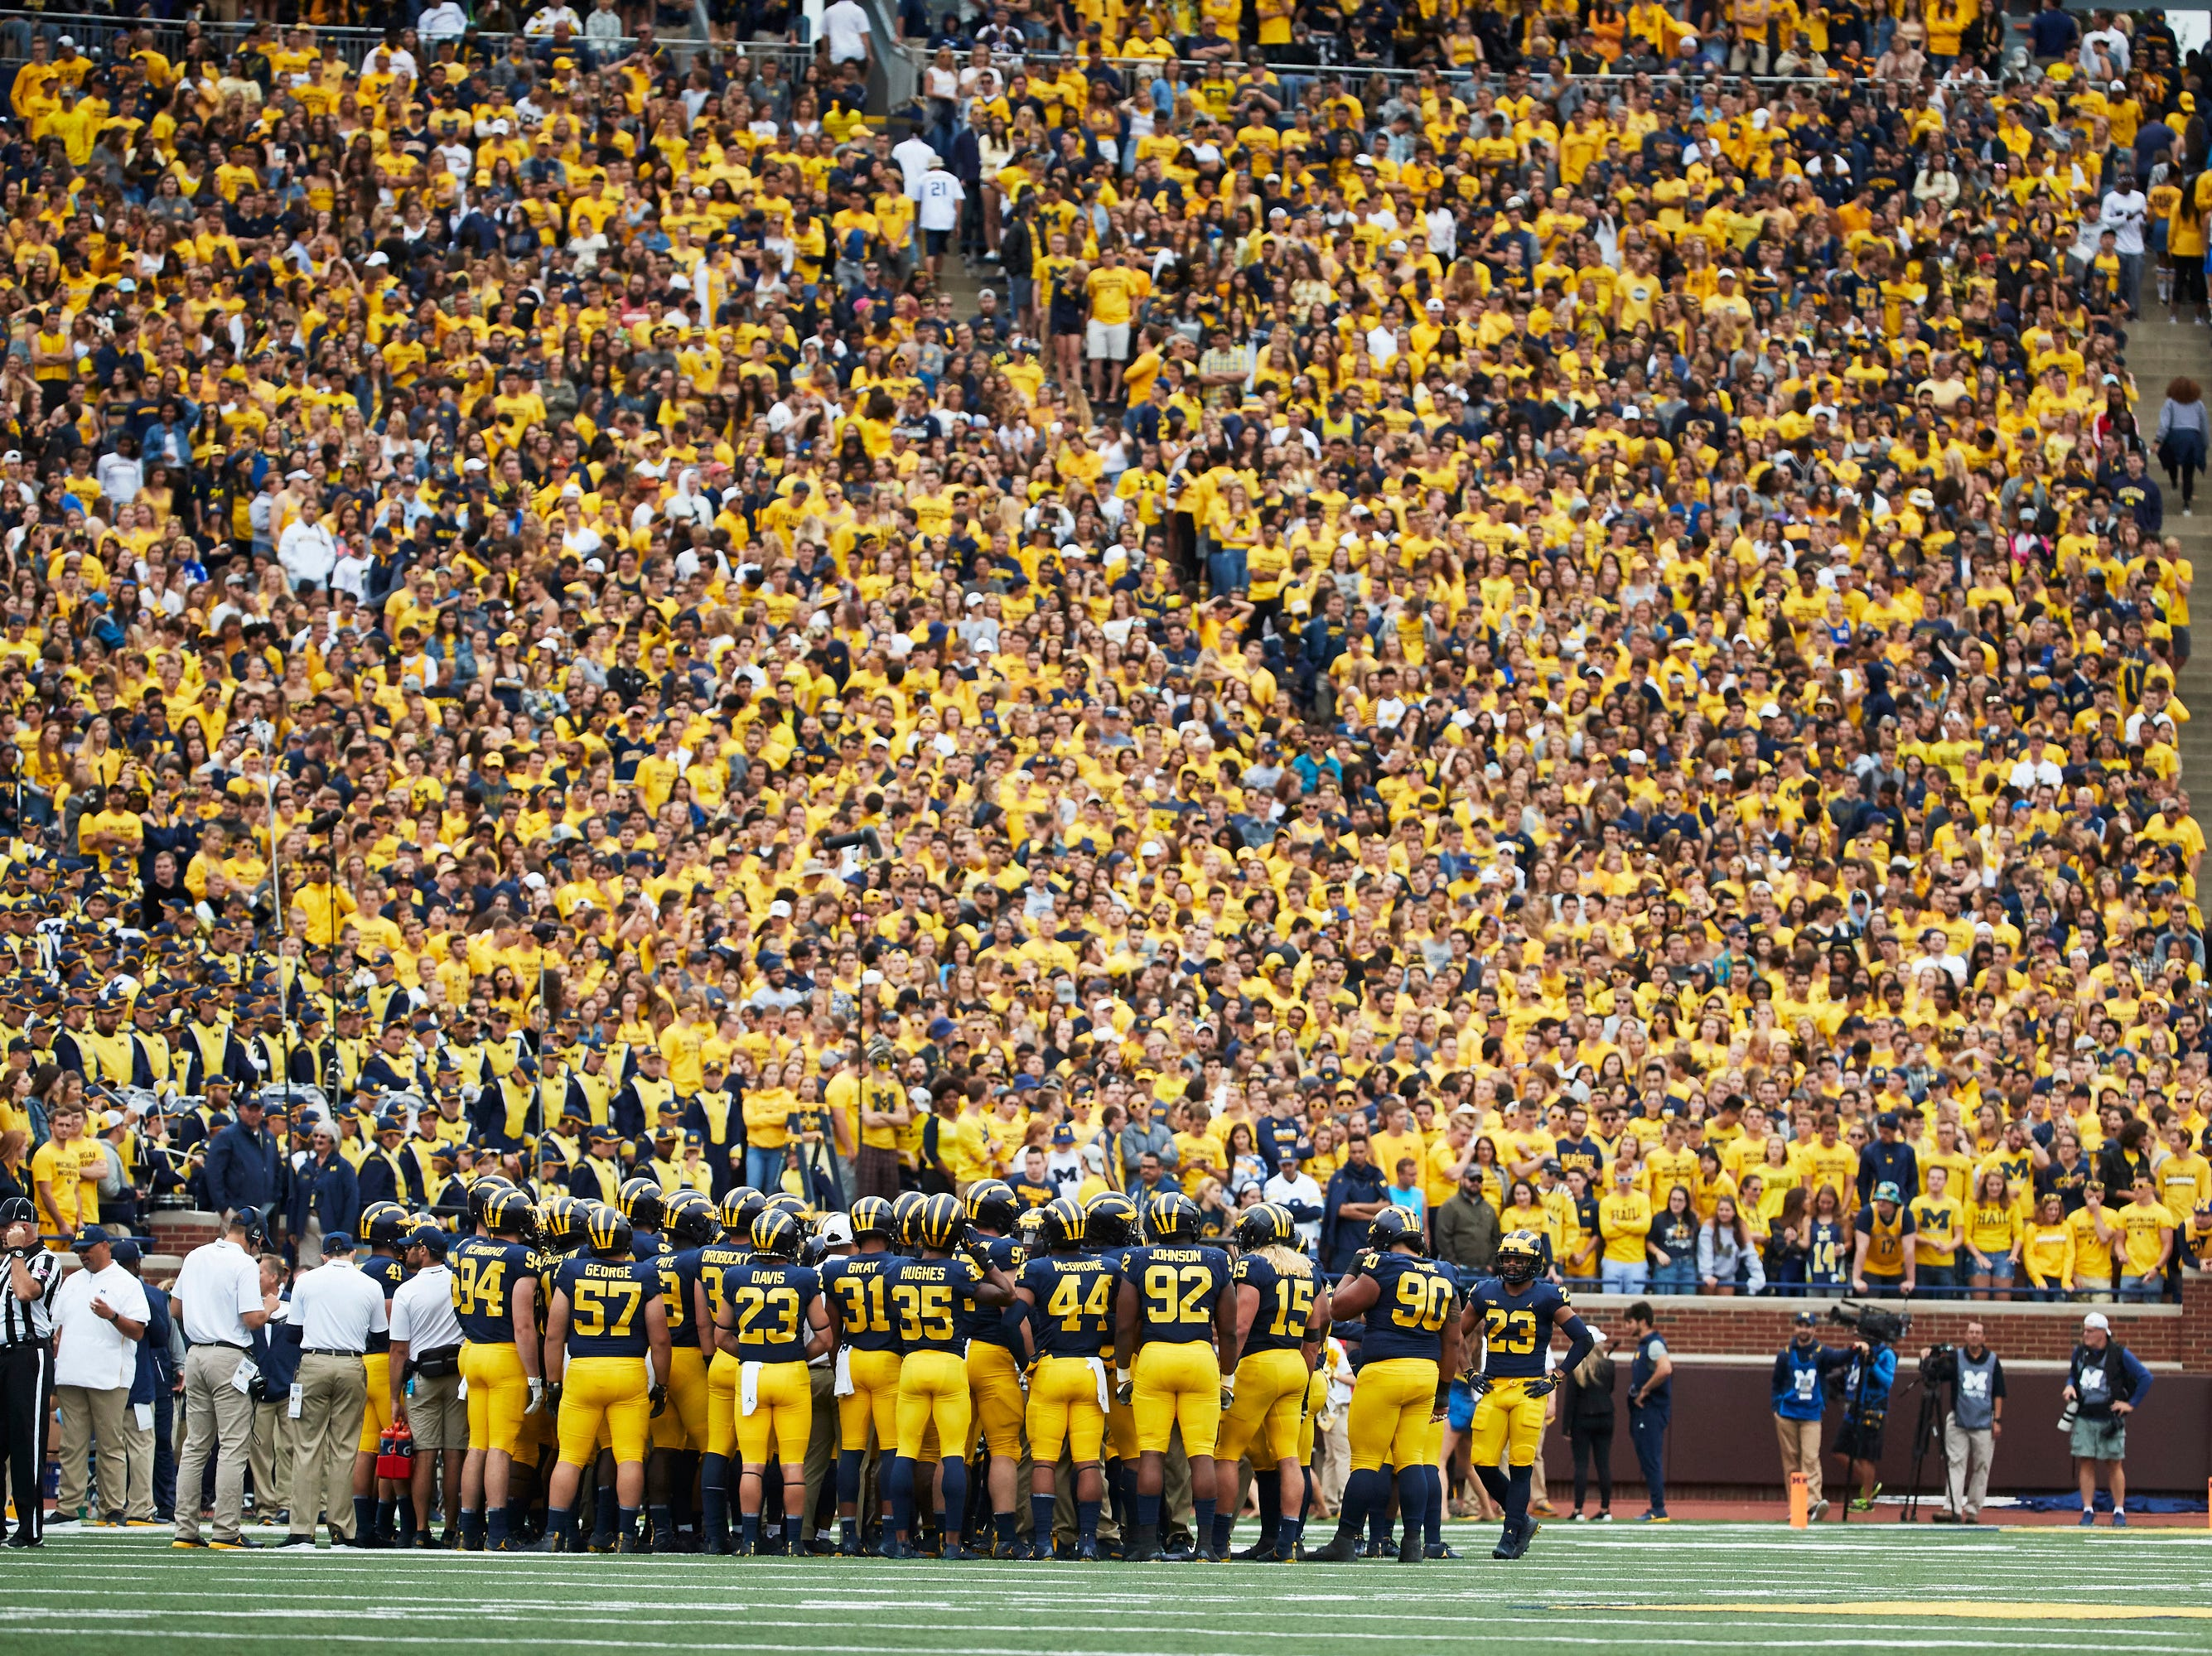 Sep 8, 2018; Ann Arbor, MI, USA; Michigan Wolverines players huddle up during a time out in the second half against the Western Michigan Broncos at Michigan Stadium. Mandatory Credit: Rick Osentoski-USA TODAY Sports